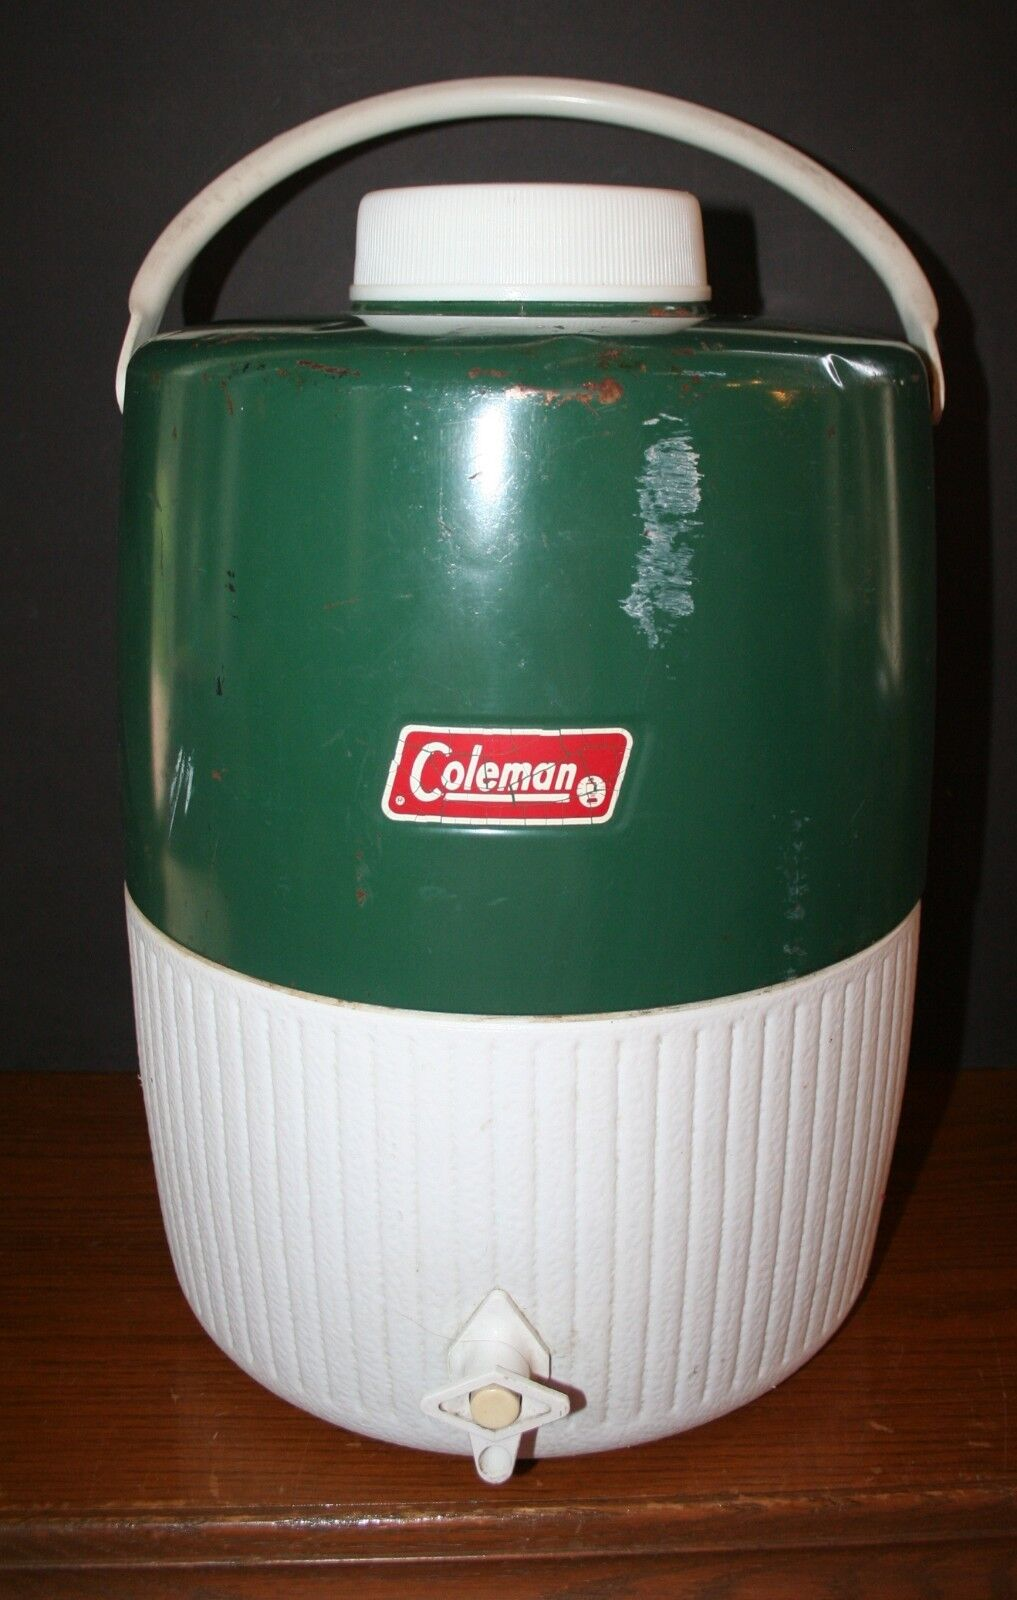 VTG COLEMAN Water  Jug Cooler Thermos Sports Cooler Green White 3 Gallon 5503B700  best service